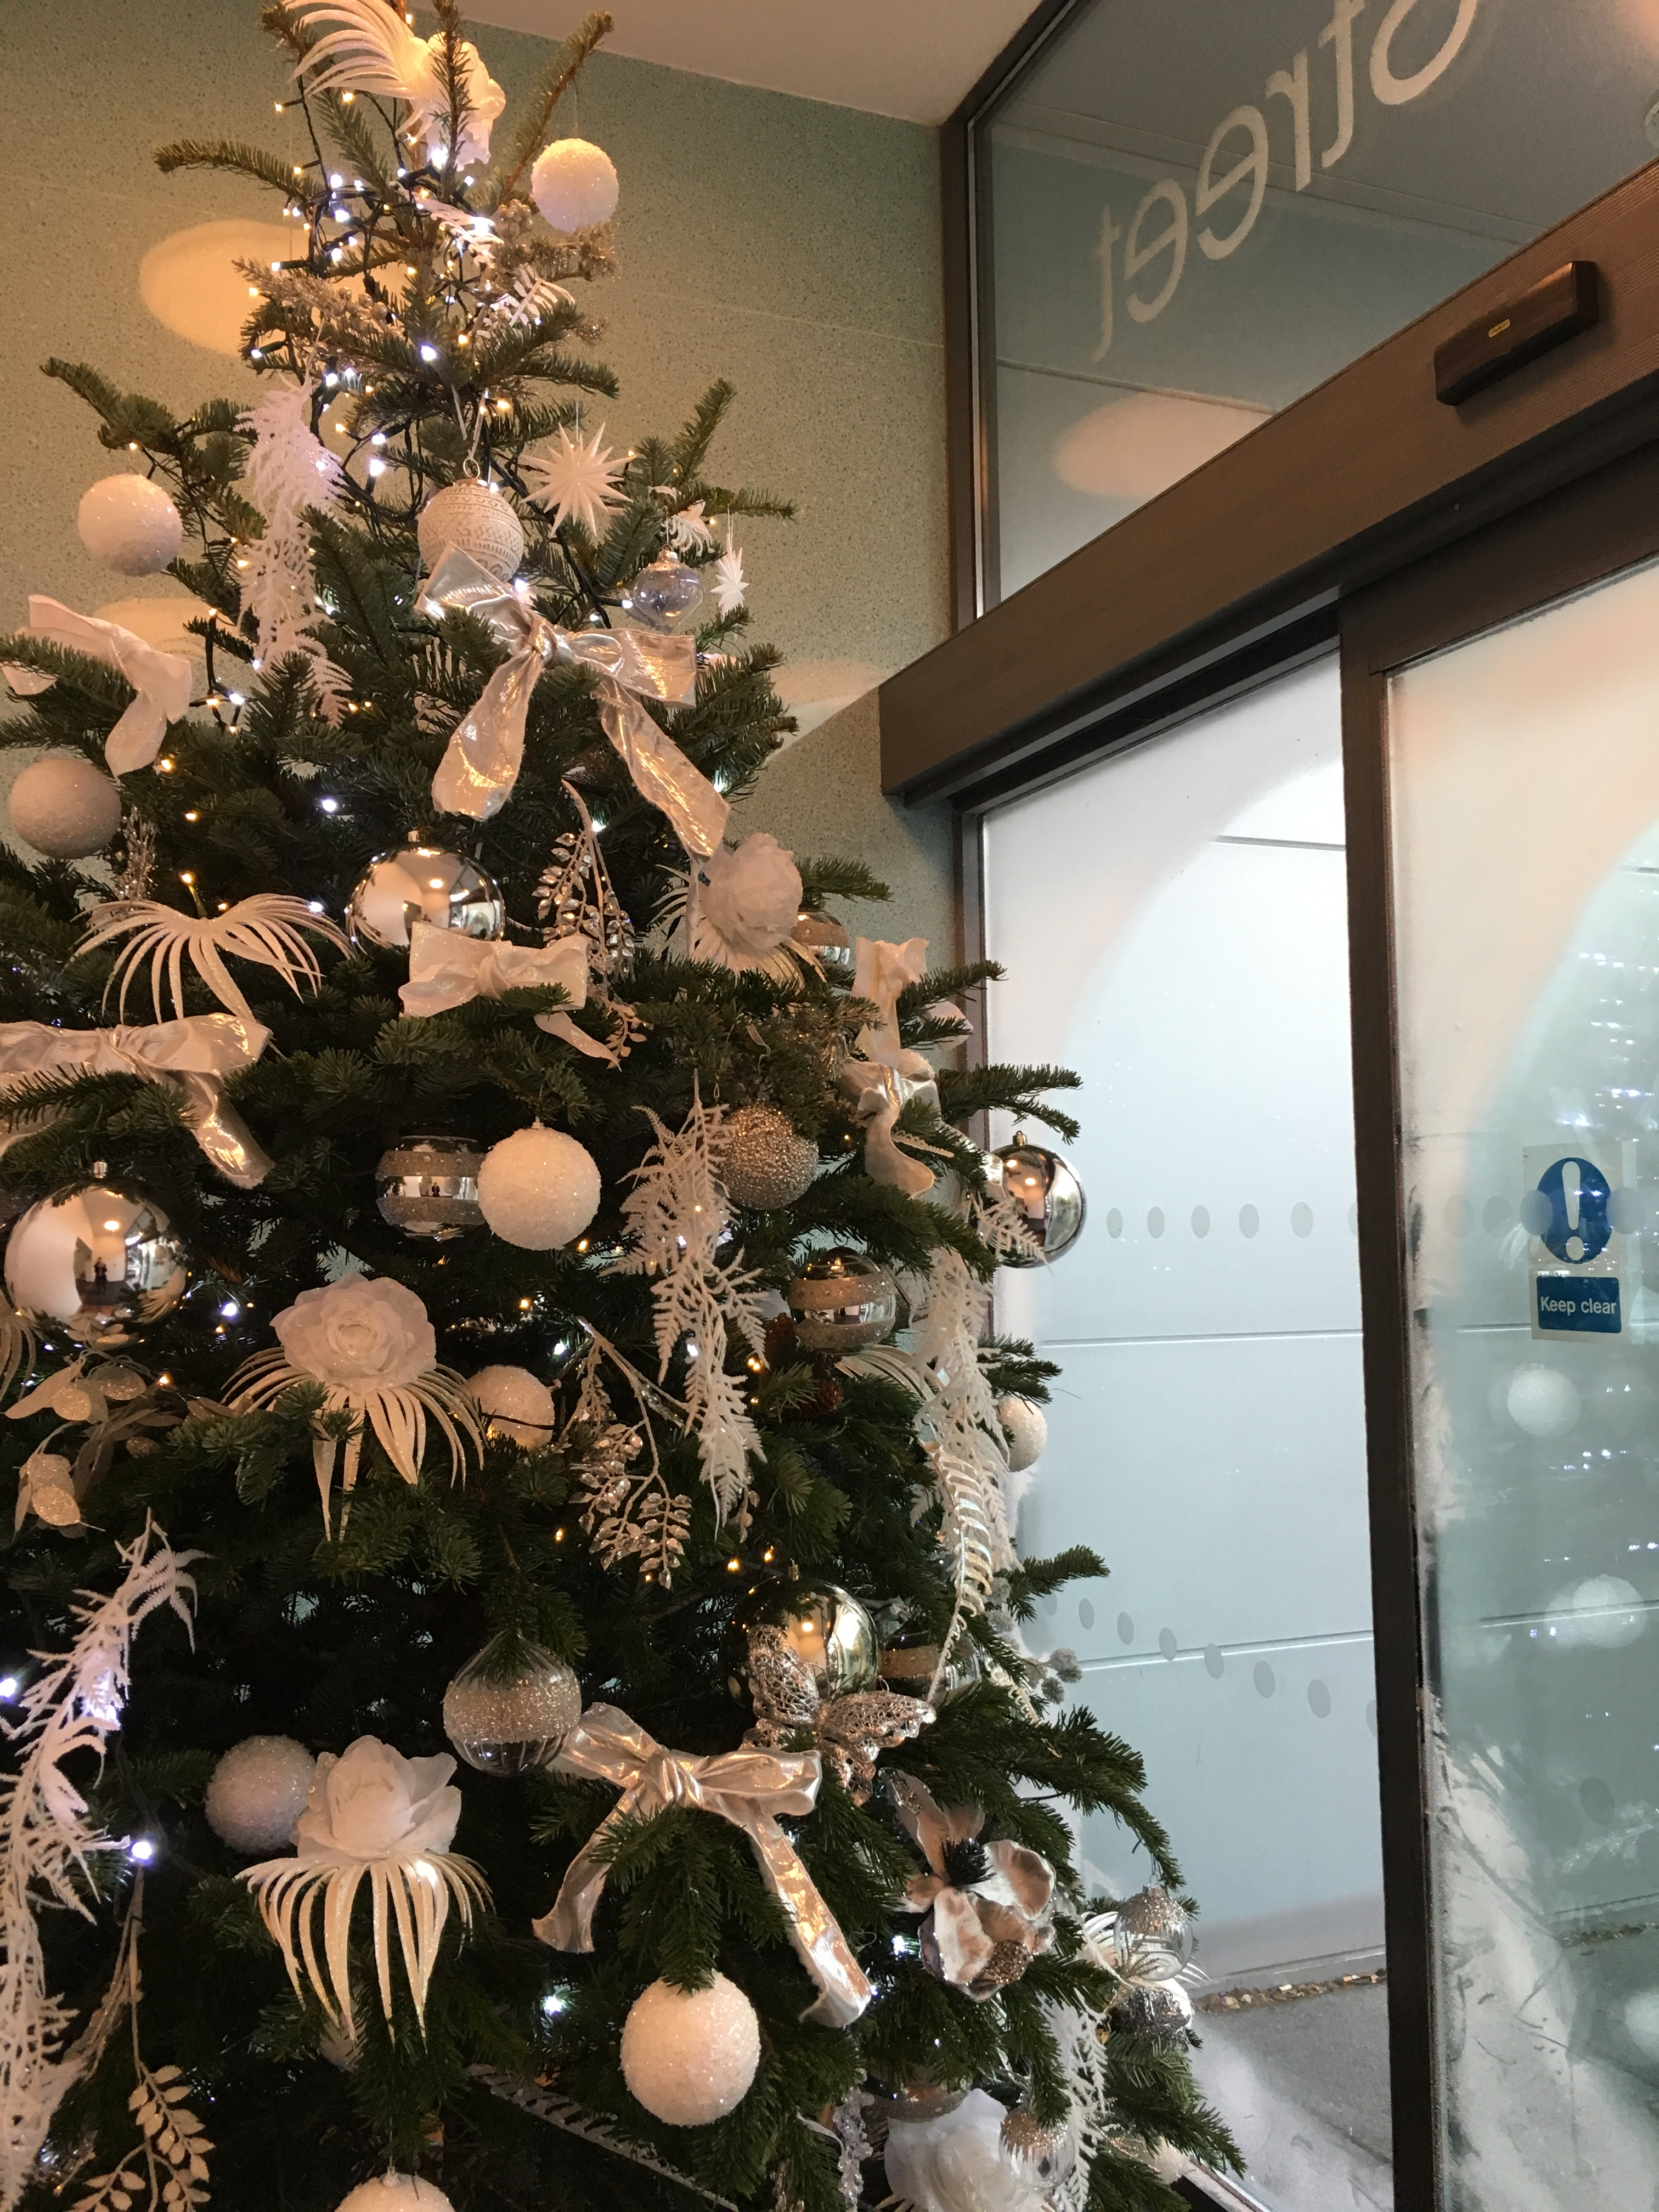 My Internship's Christmas tree is even equipped with little white squirrels underneath it